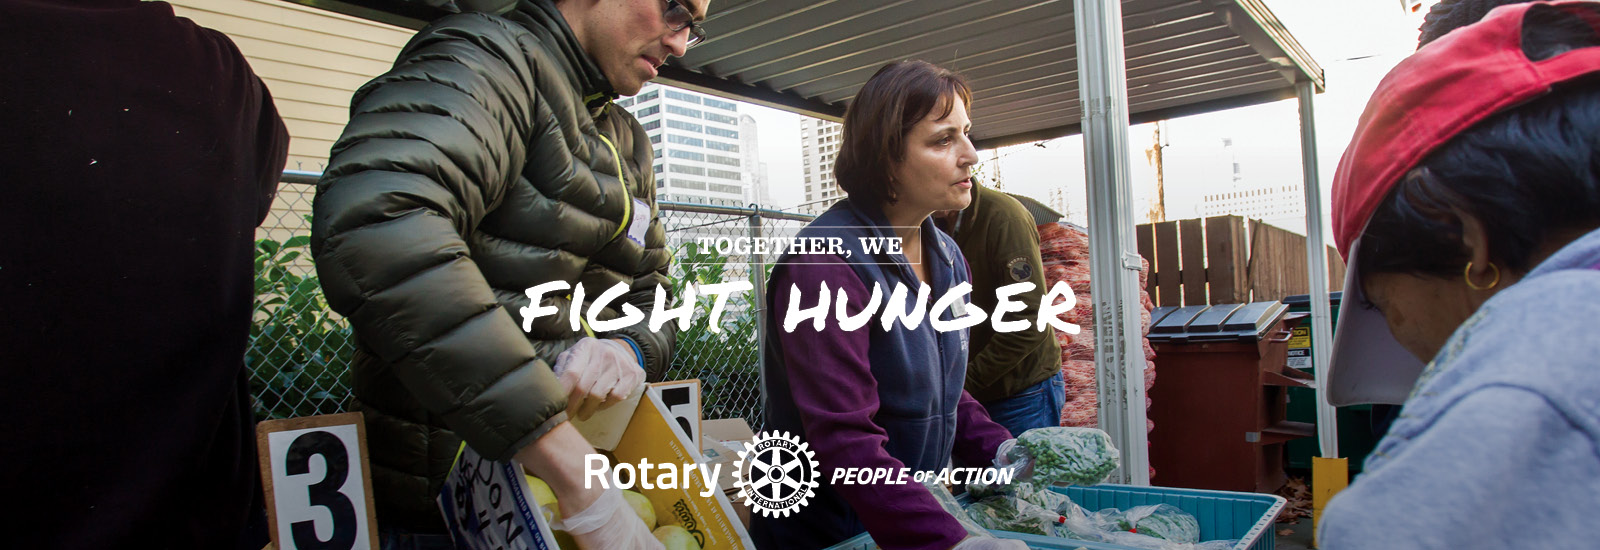 20364_Together_We_Fight_Hunger_Digital_horizontal_banner_ORIGINAL